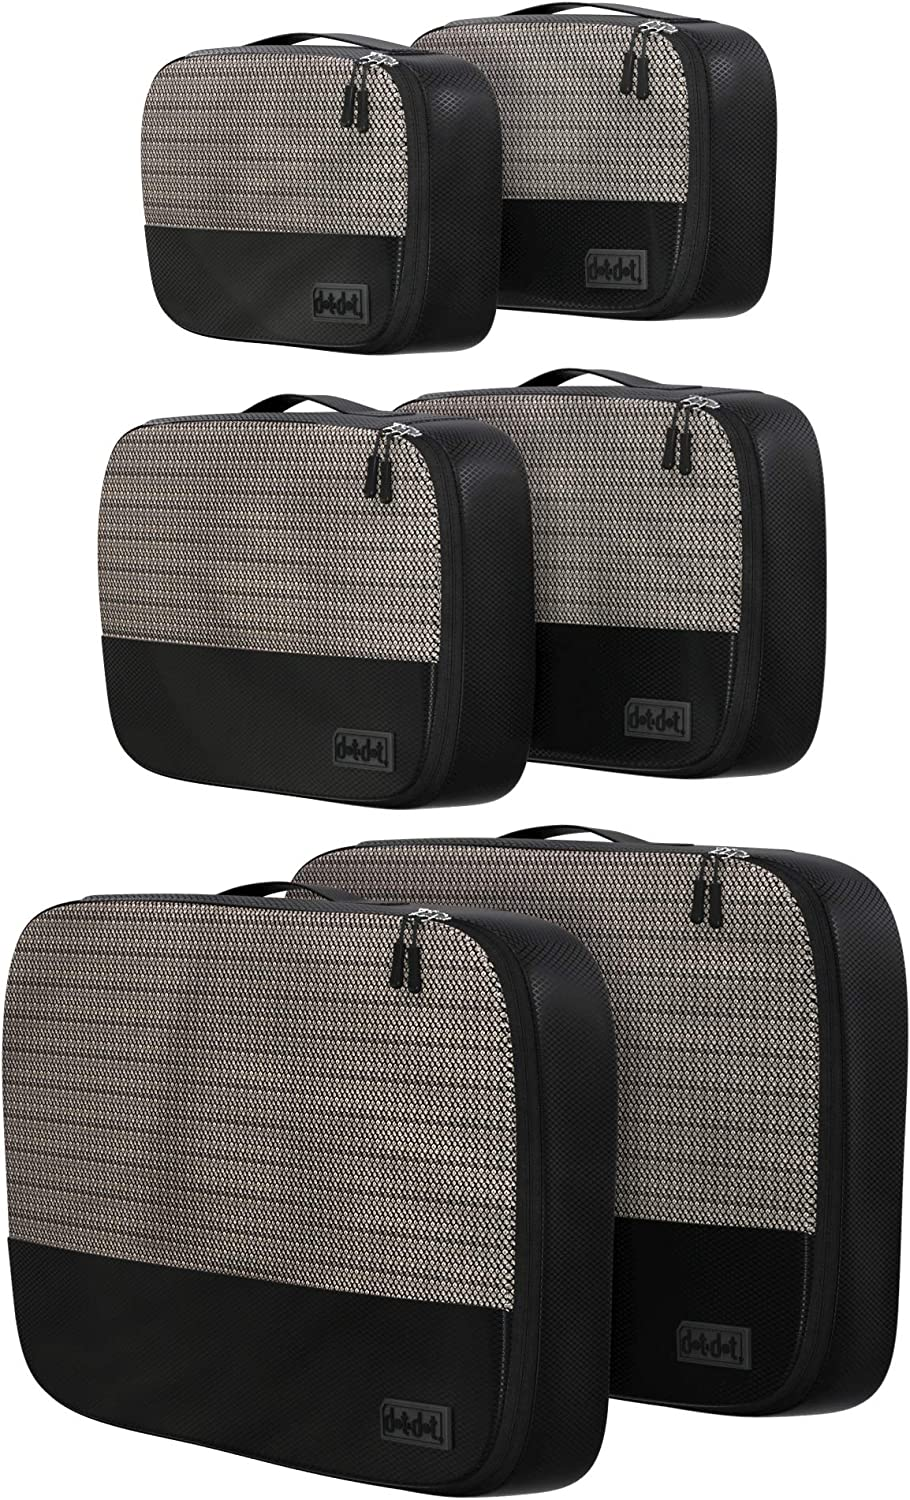 Packing Cubes Set of 6 - Lightweight Packing Cubes for Travel